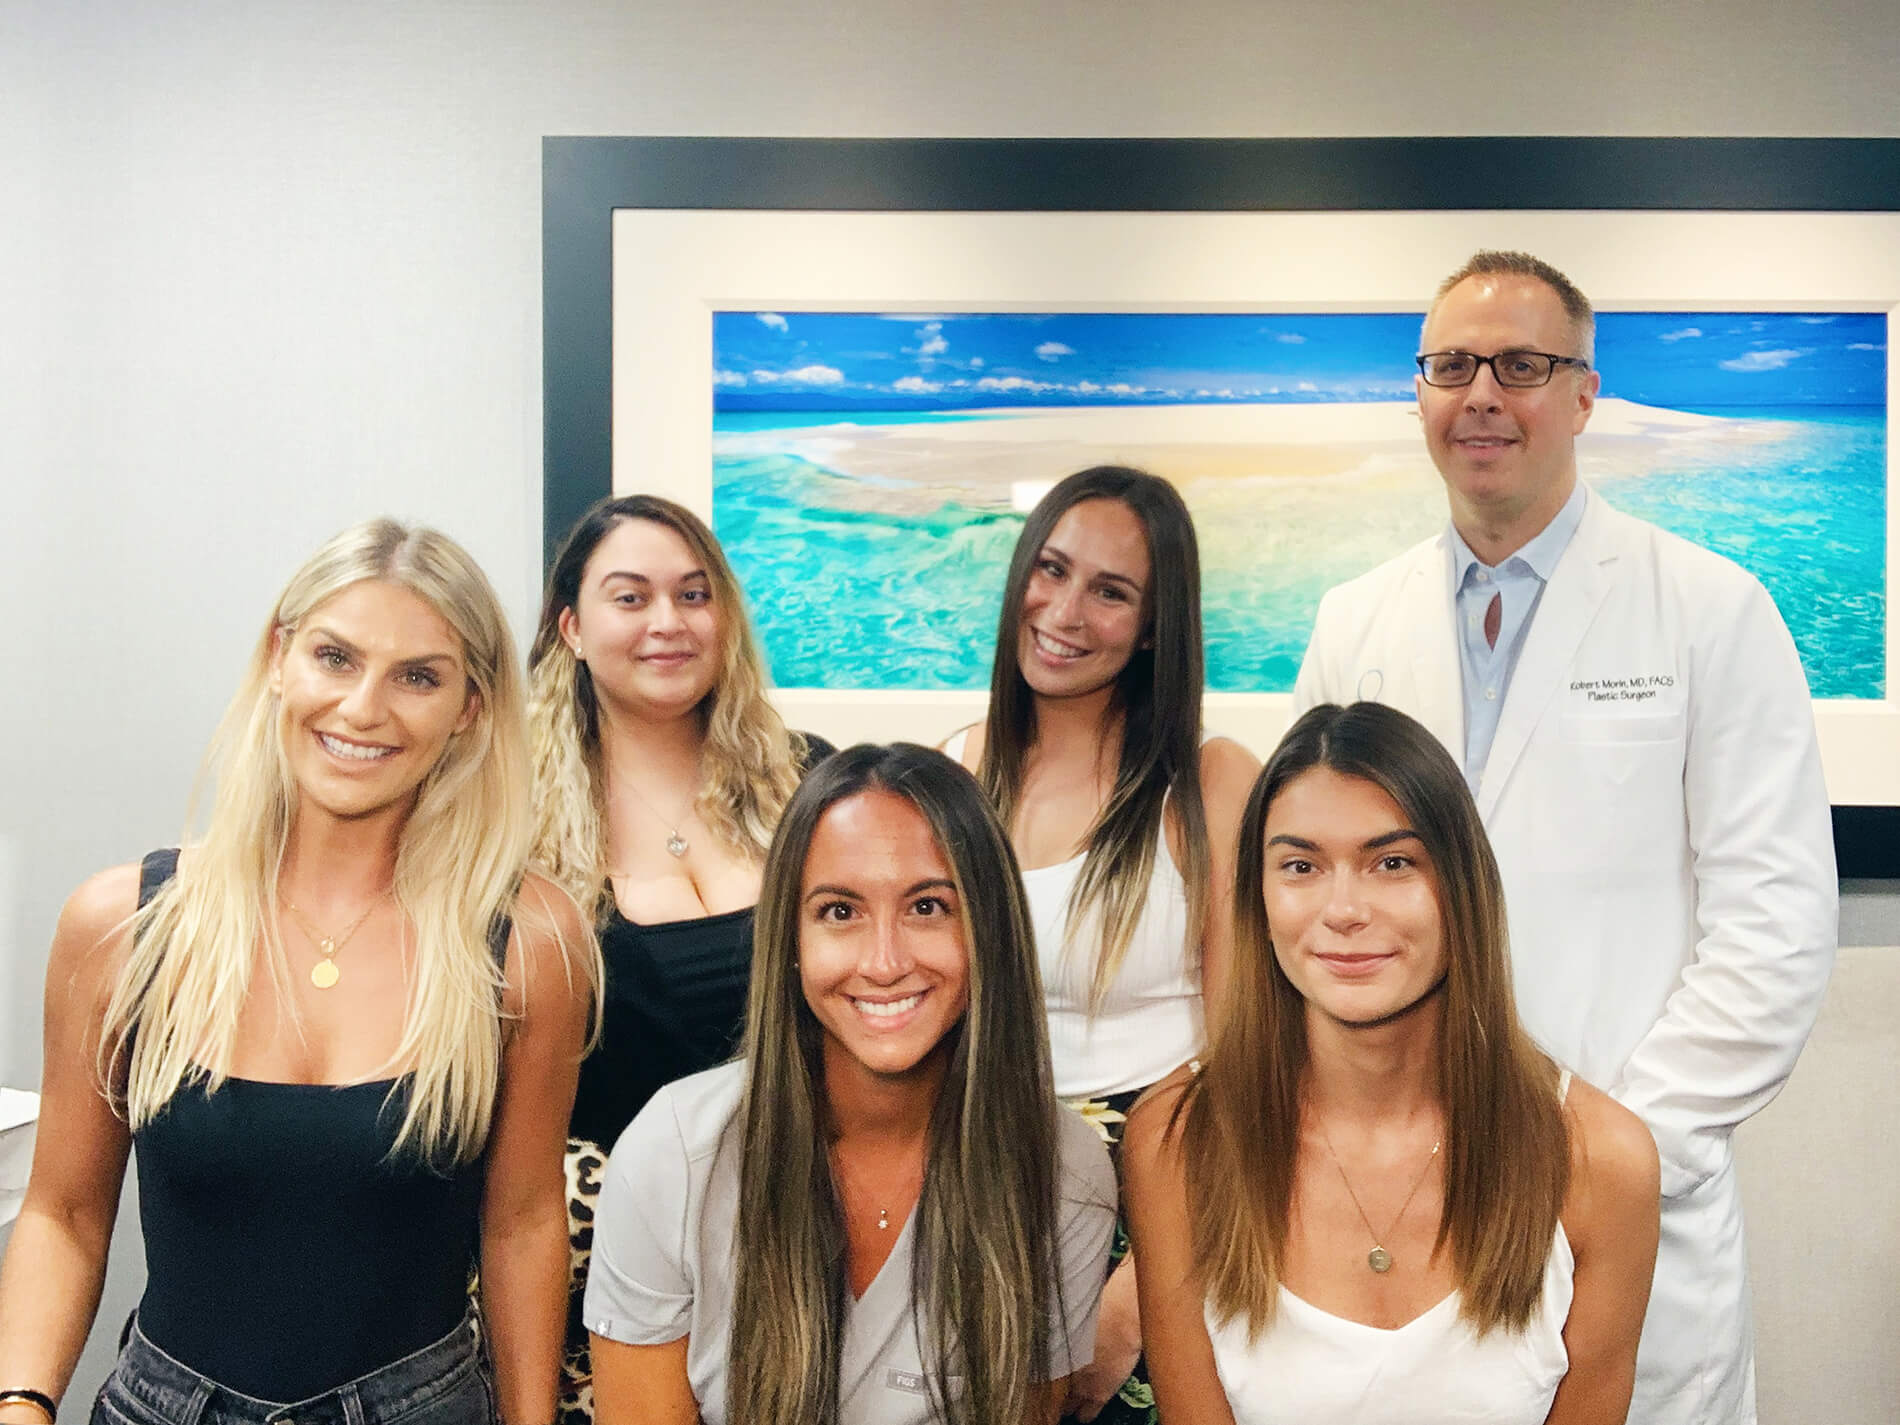 Robert Morin MD with beautiful smiling woman's team